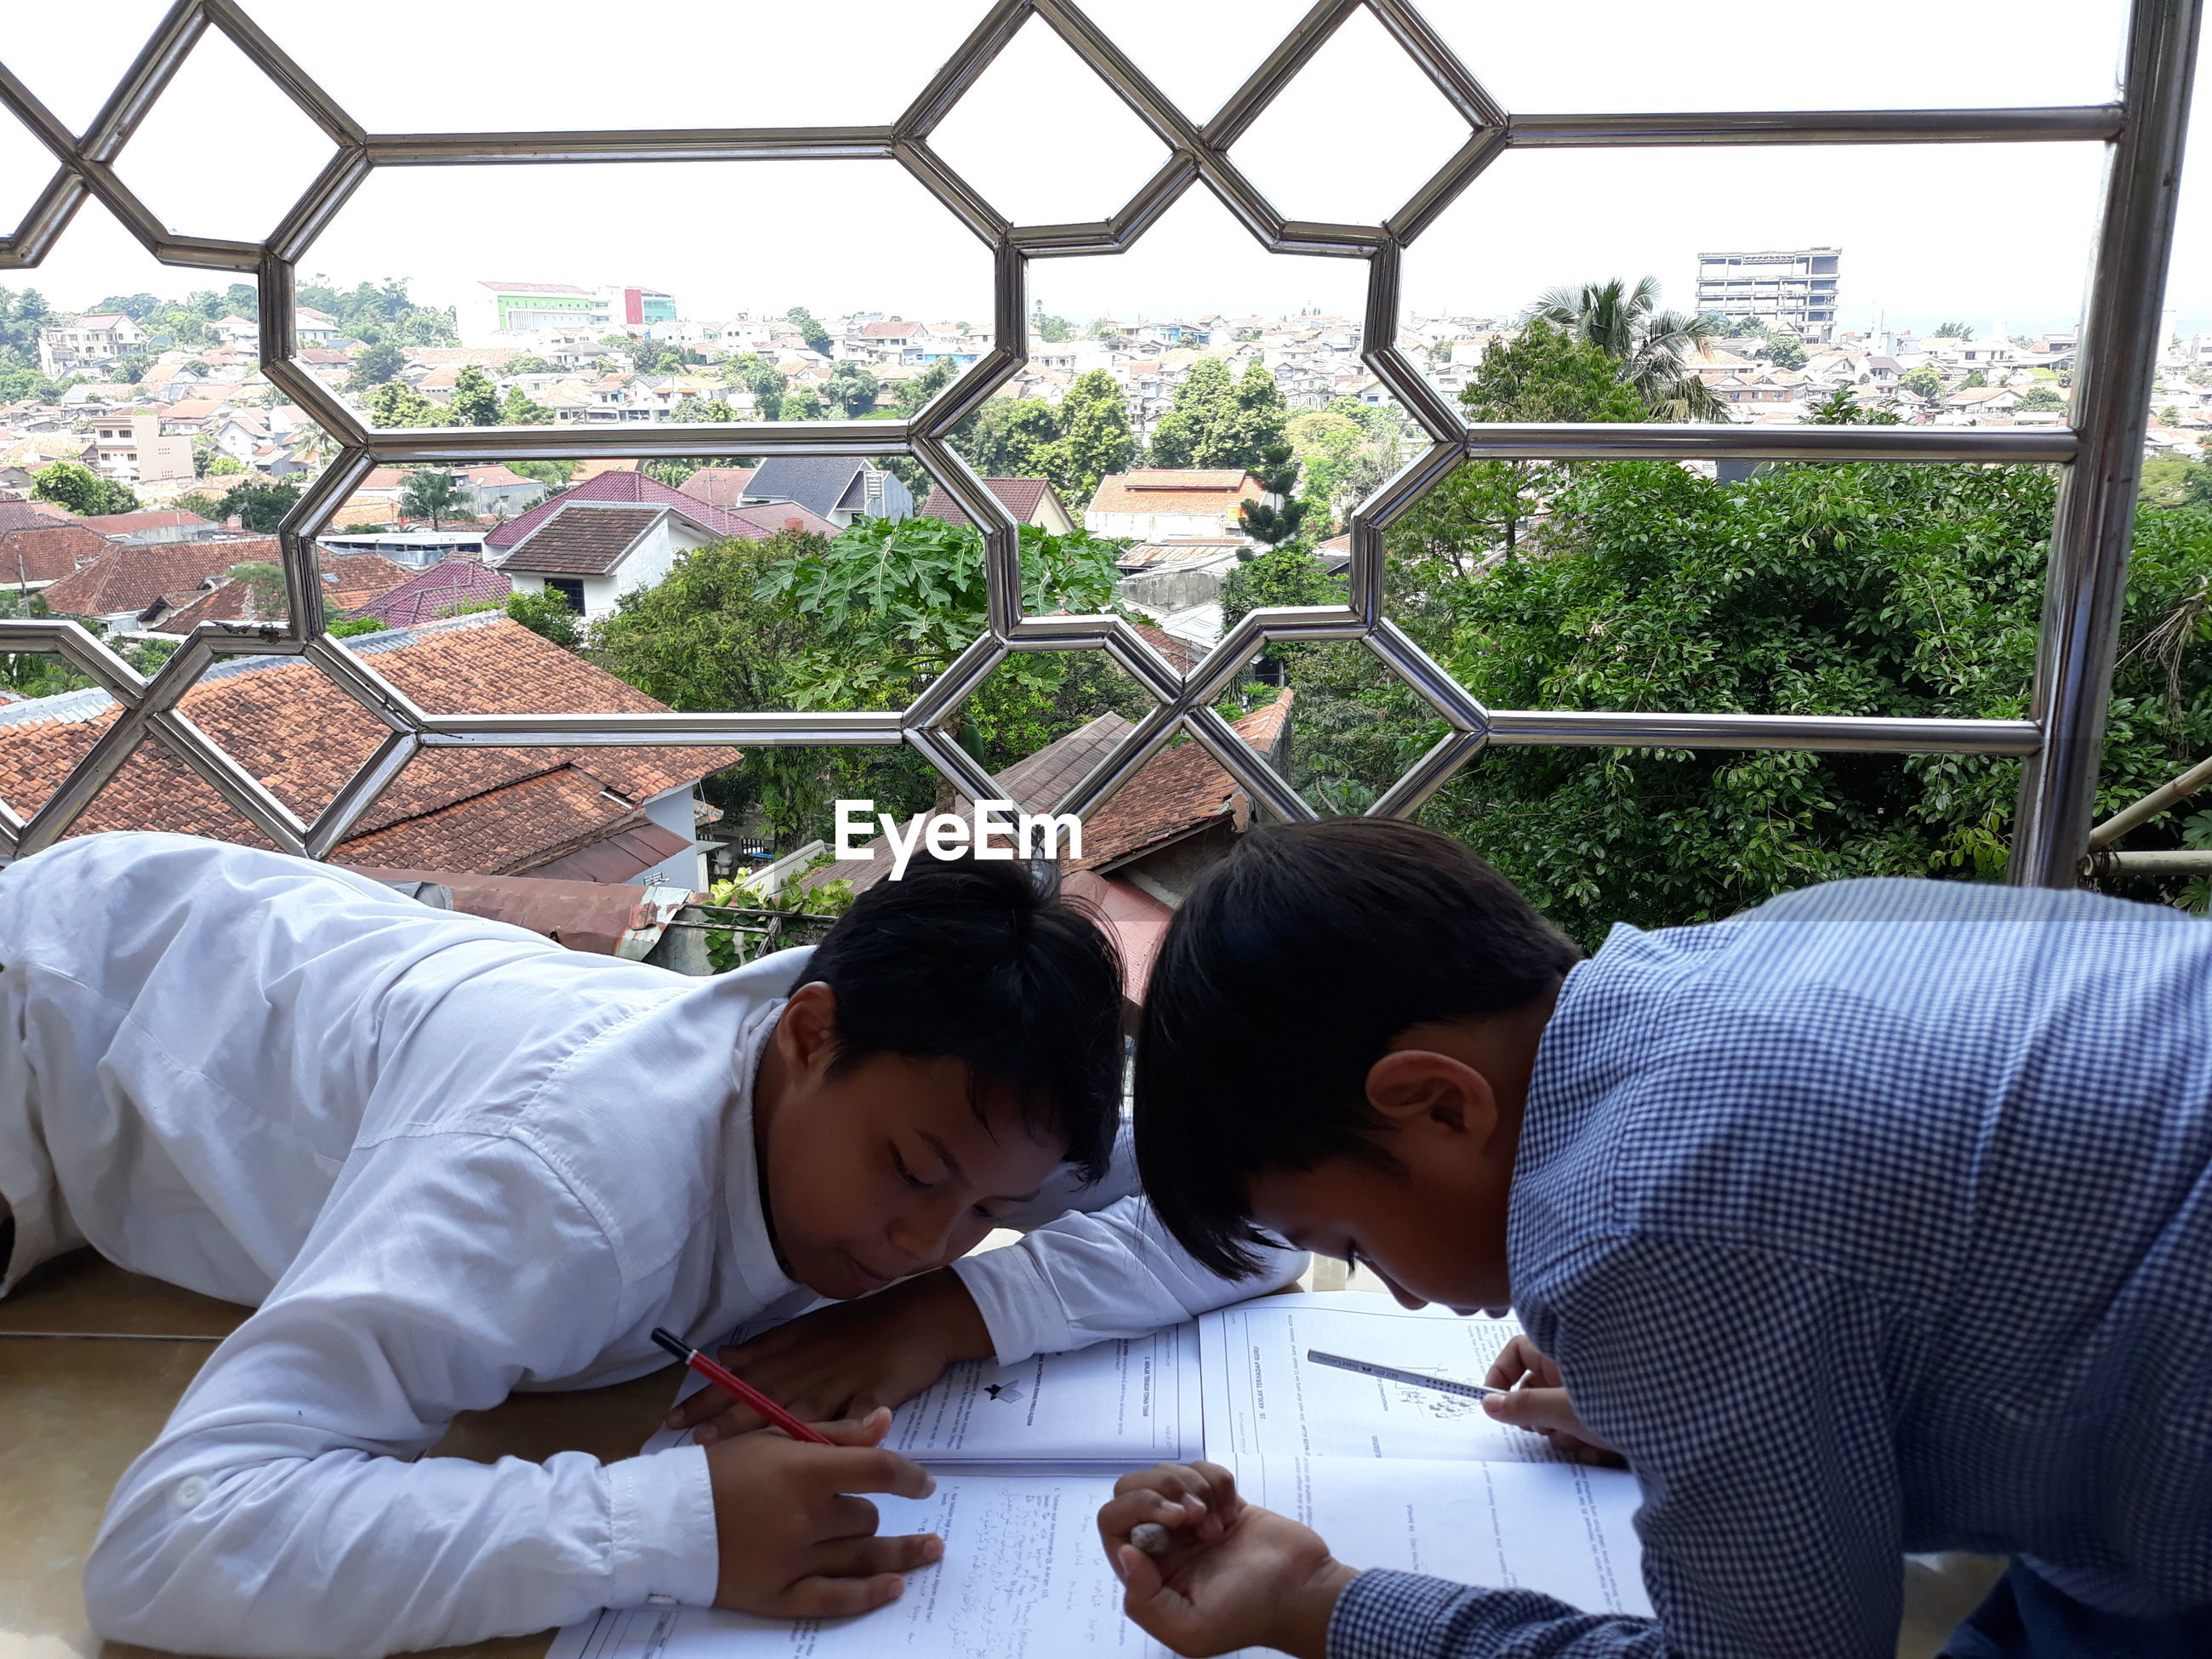 Brothers studying by window